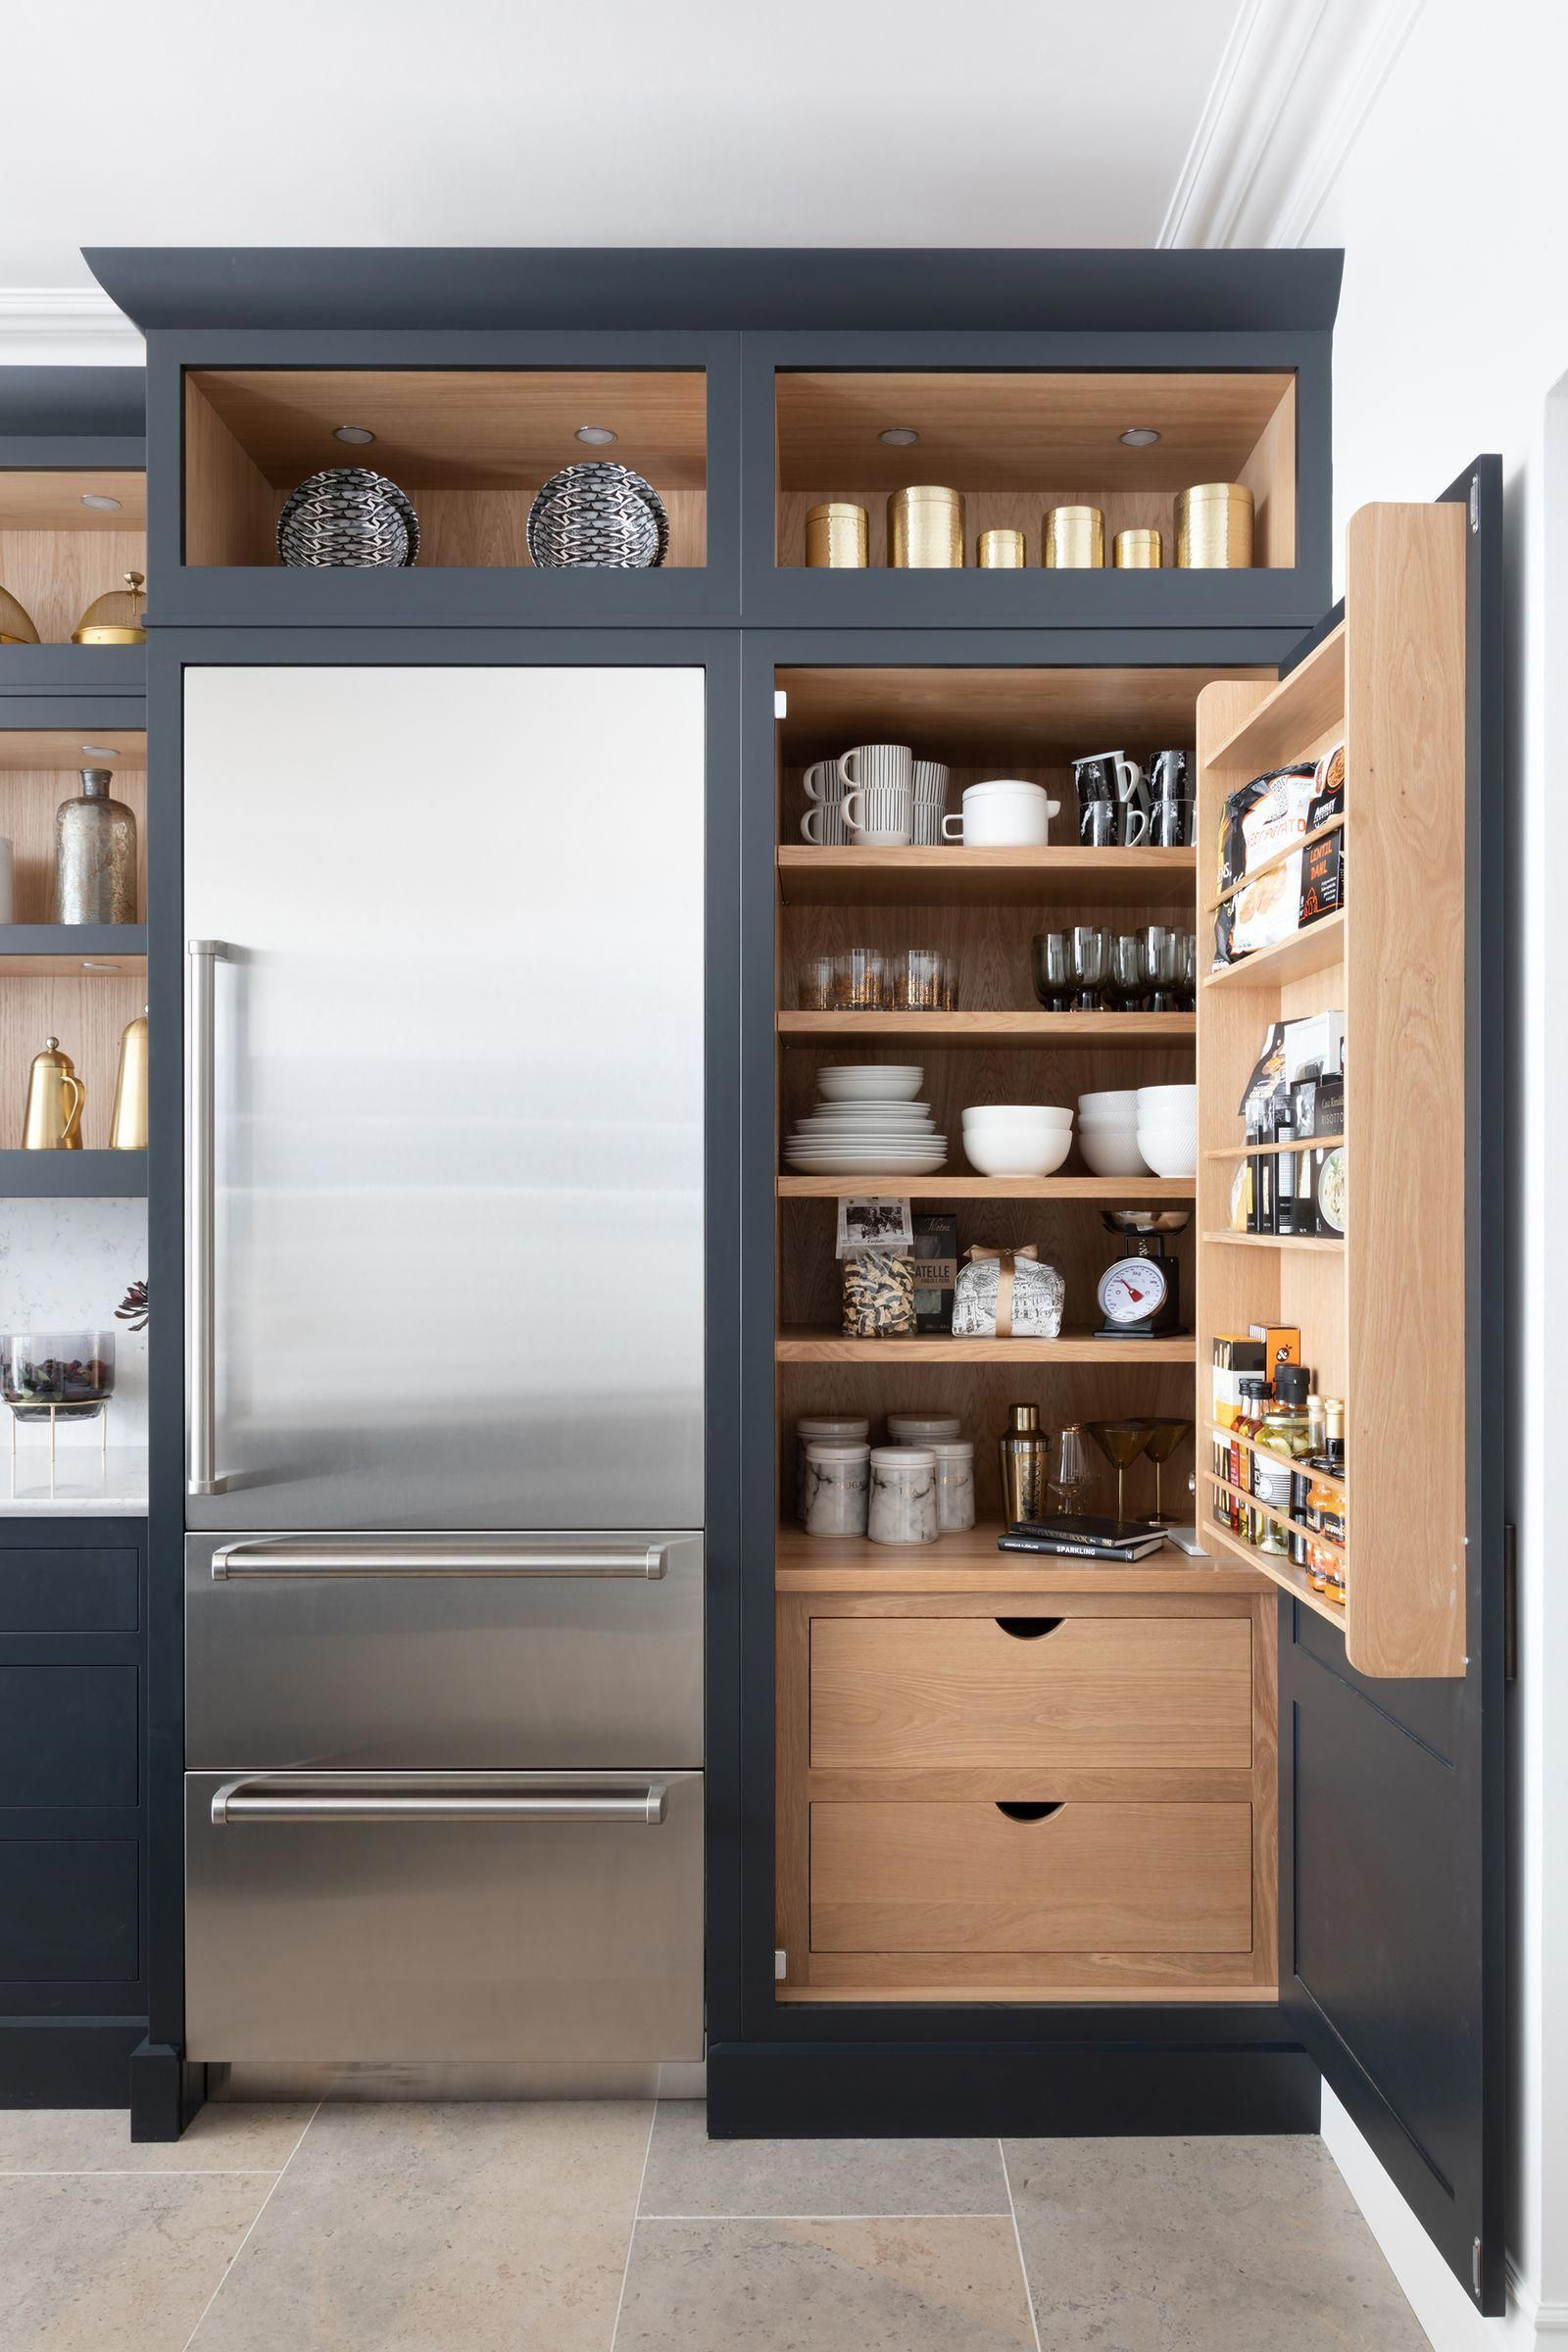 Here, a smart navy grey pull-out larder-style cabinet helps to